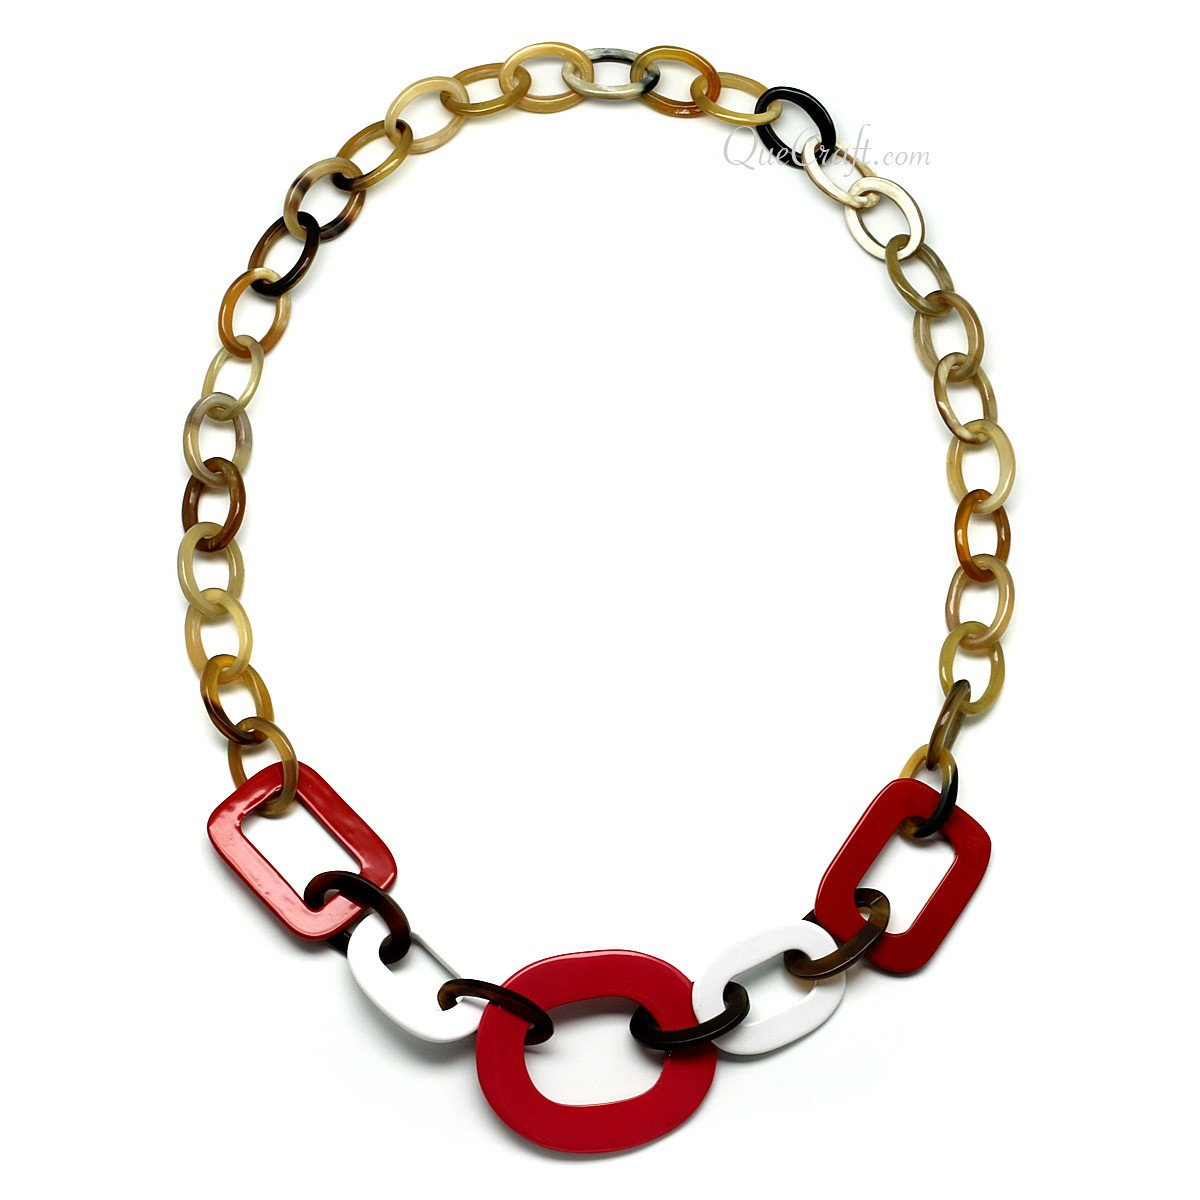 Horn & Lacquer Chain Necklace #11272 - HORN.JEWELRY